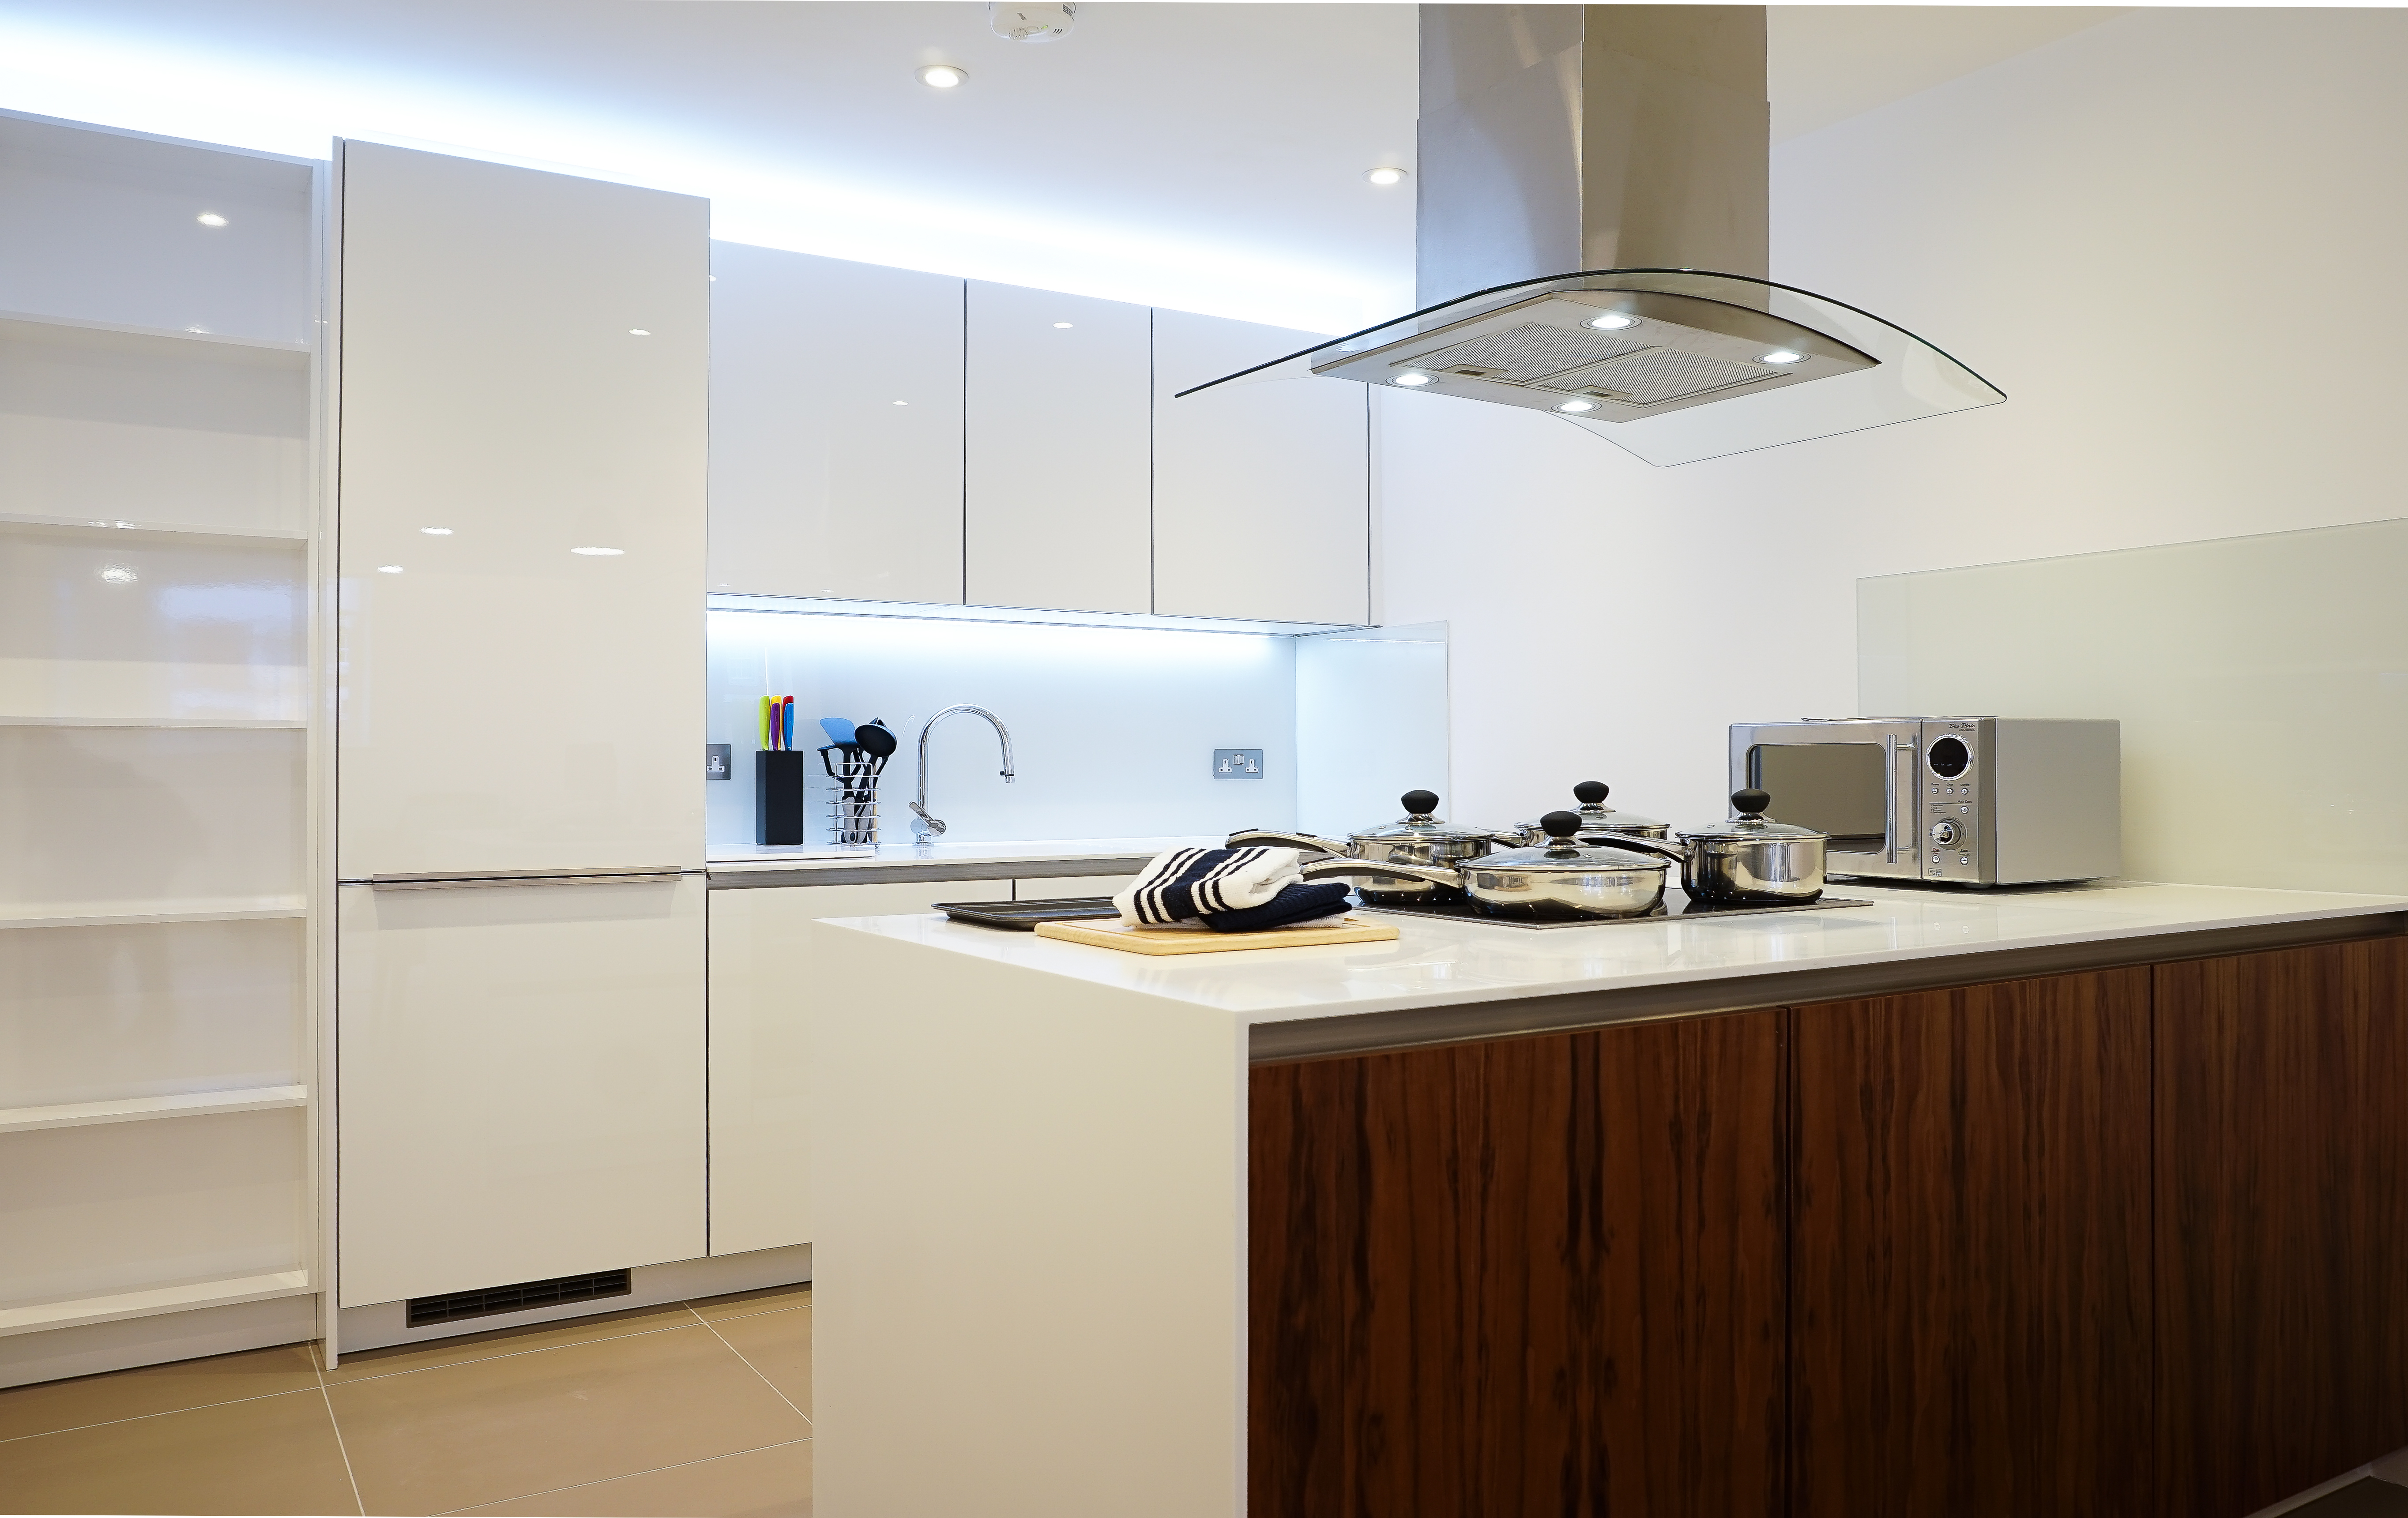 A modern kitchen with a clean white aesthetic.